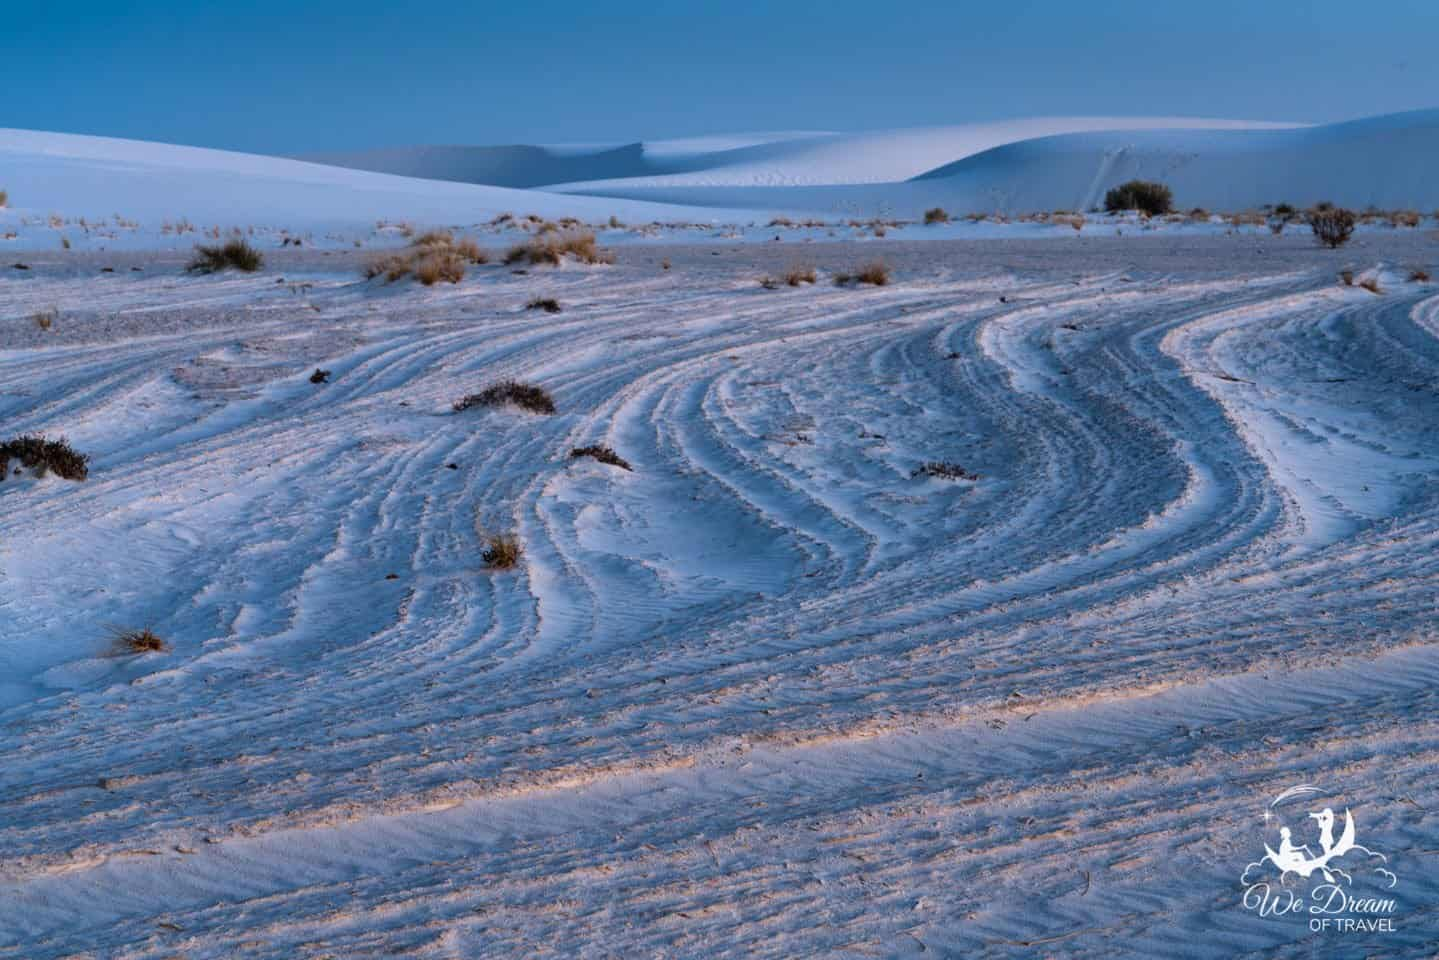 Warm and cool colors accentuate the textures of the Alkali Flats in White Sands.